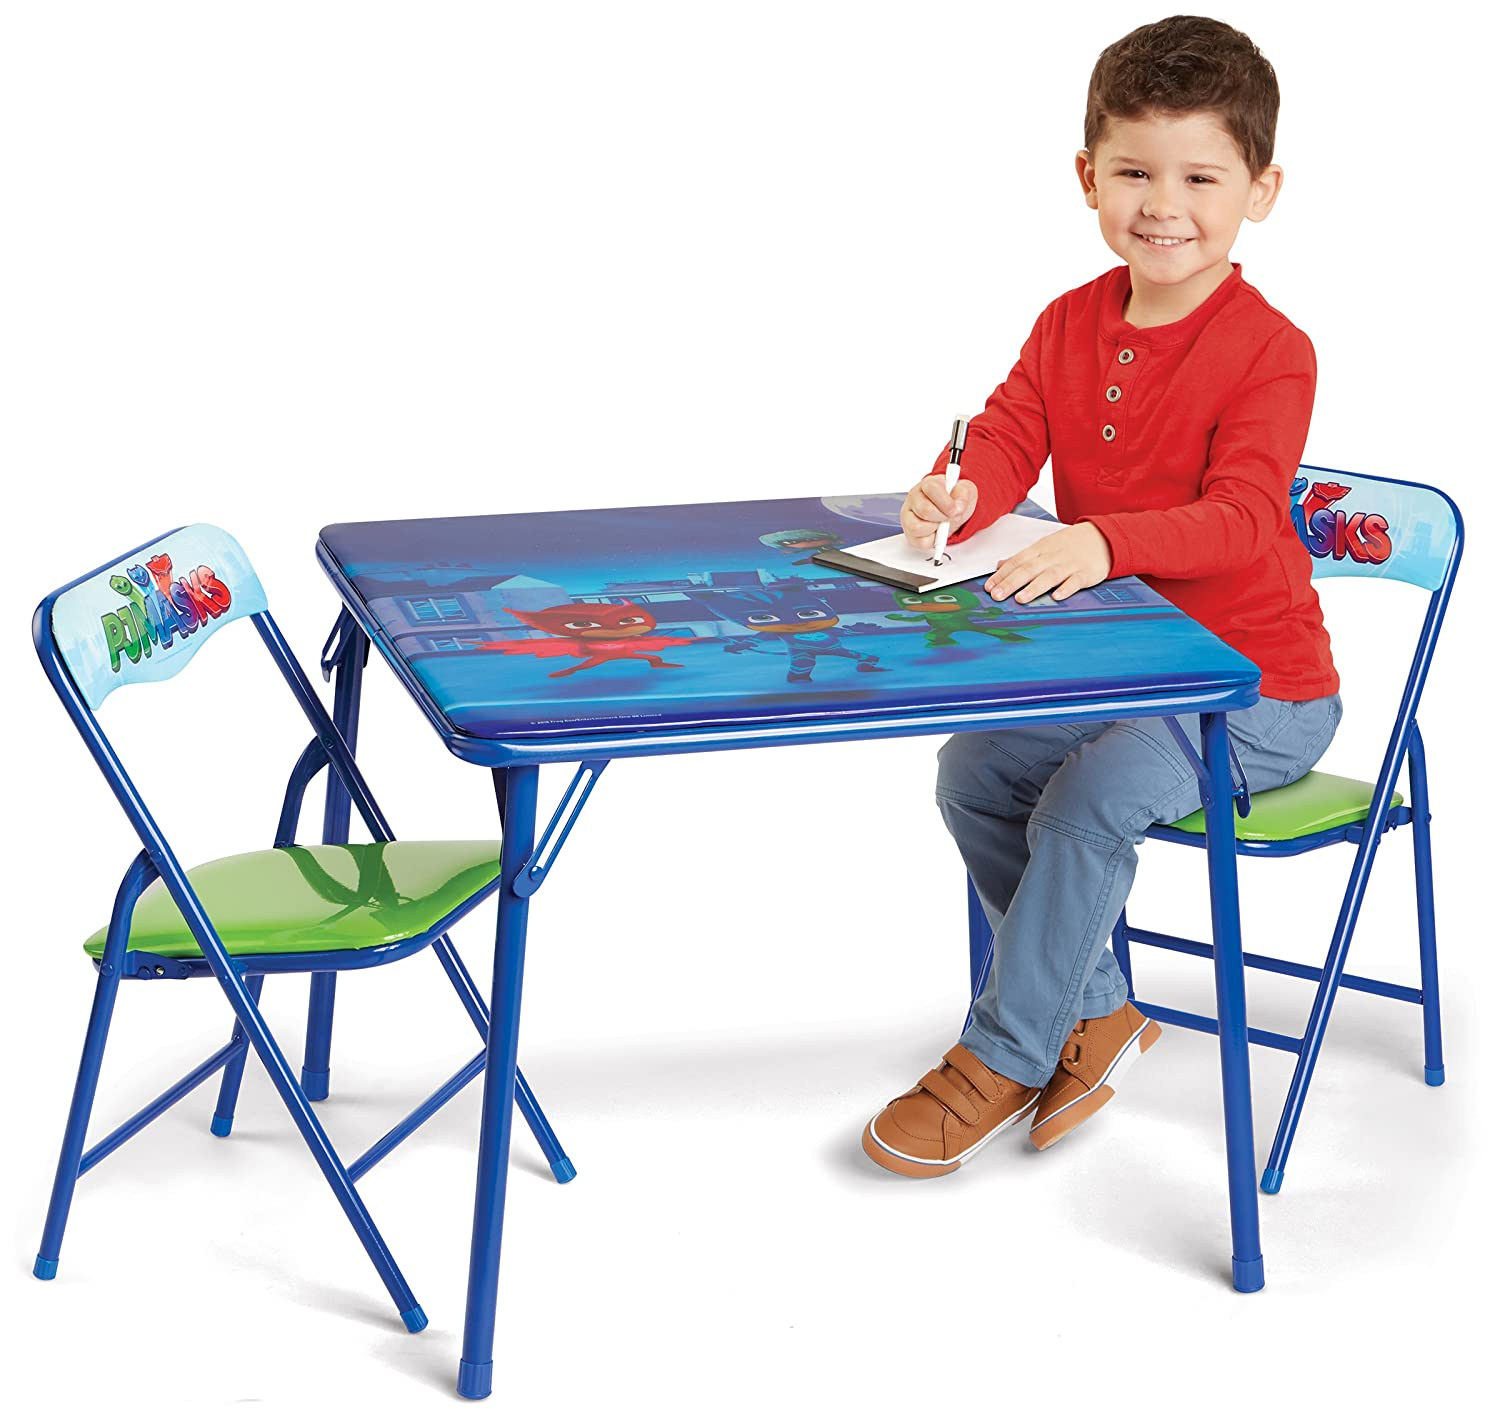 Spiderman Spider-Man Super Hero Adventures Activity Table Set with 2 Chairs Play Two, Spiderman Moose Mountain - Domestic 63669